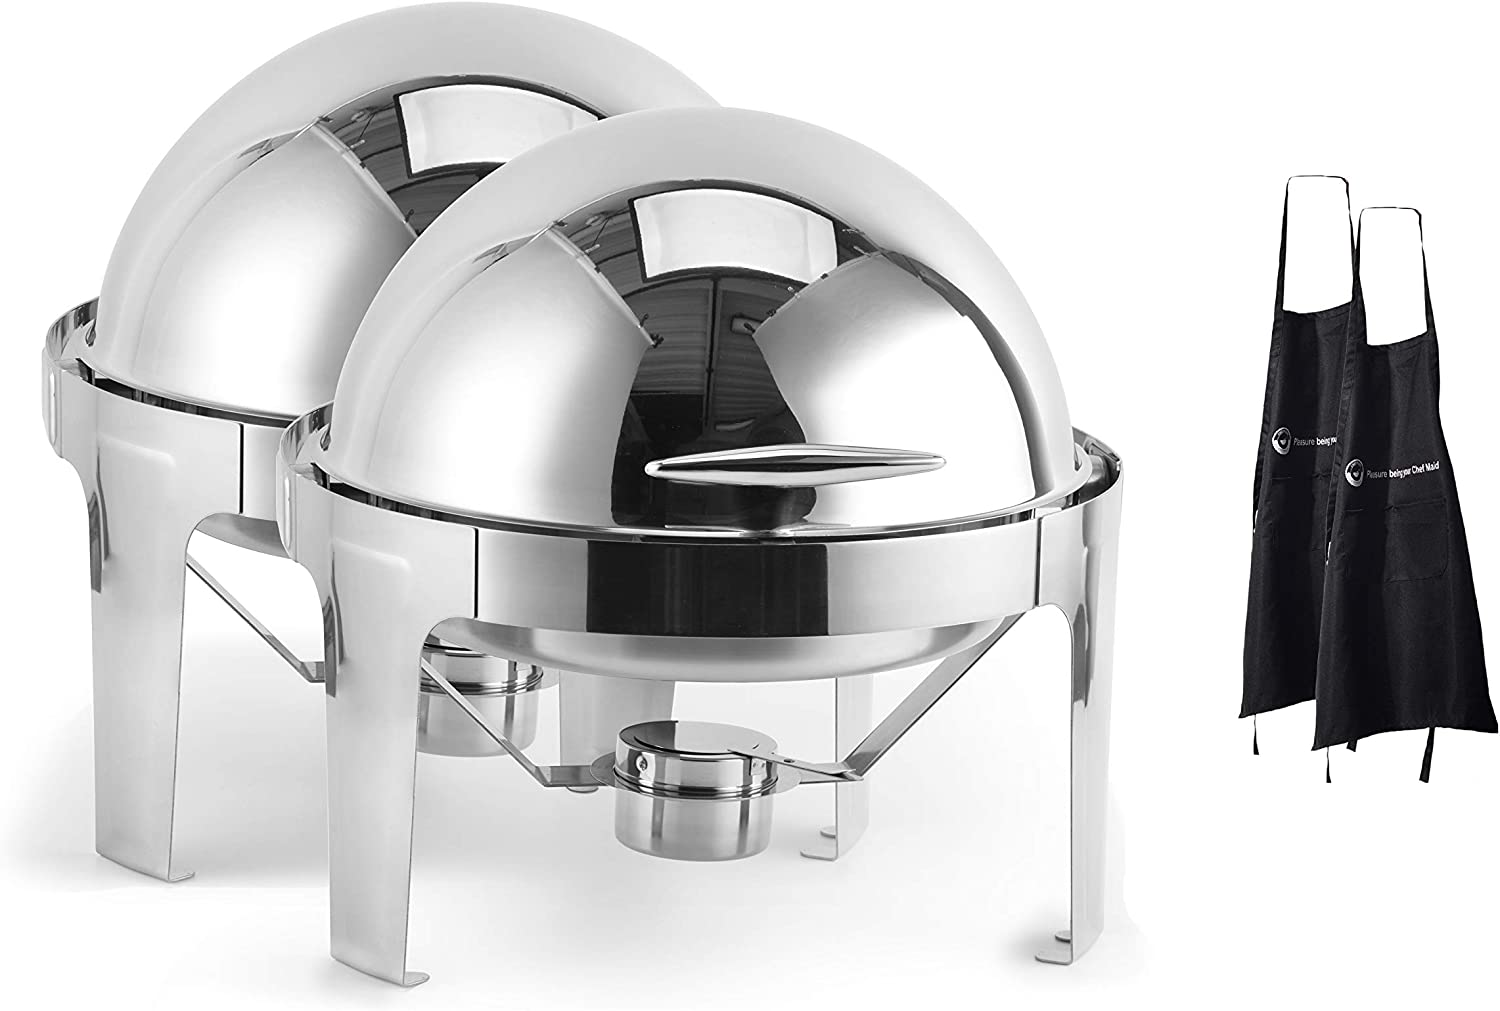 2 Pack Inexpensive 6 QT Round Roll Steel Regular dealer Stainless Chafer Top Dish Chafing